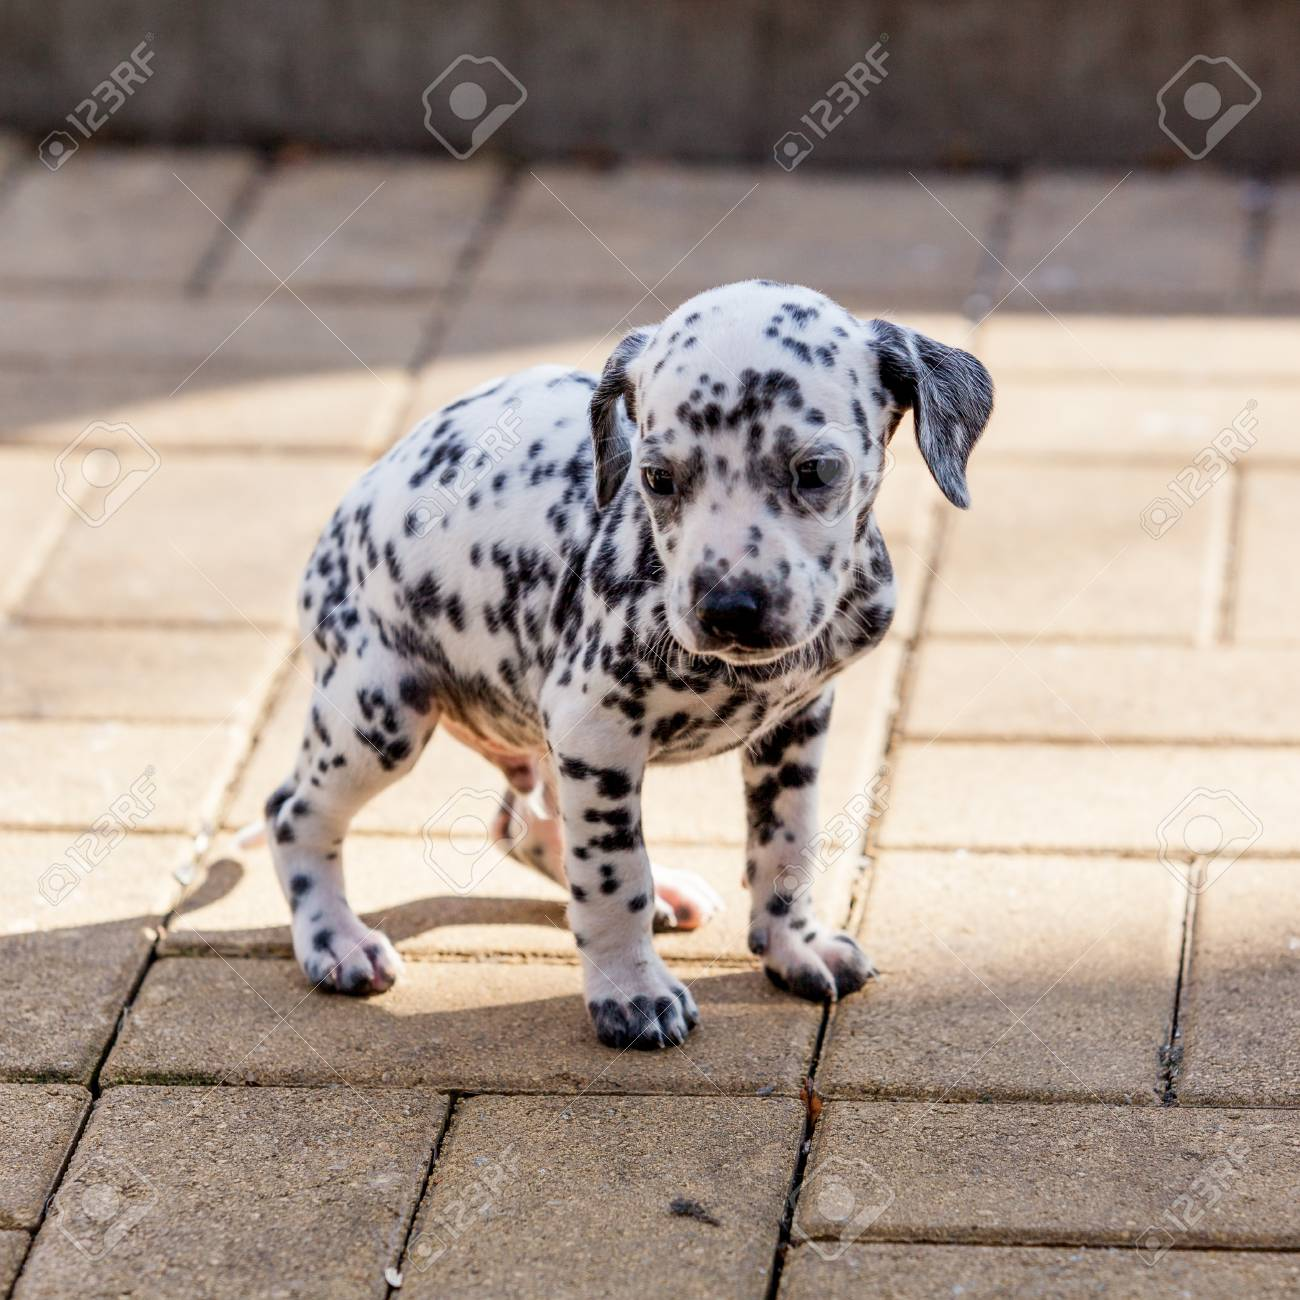 Dalmatian Dog Dalmatian Puppy Stock Photo Picture And Royalty